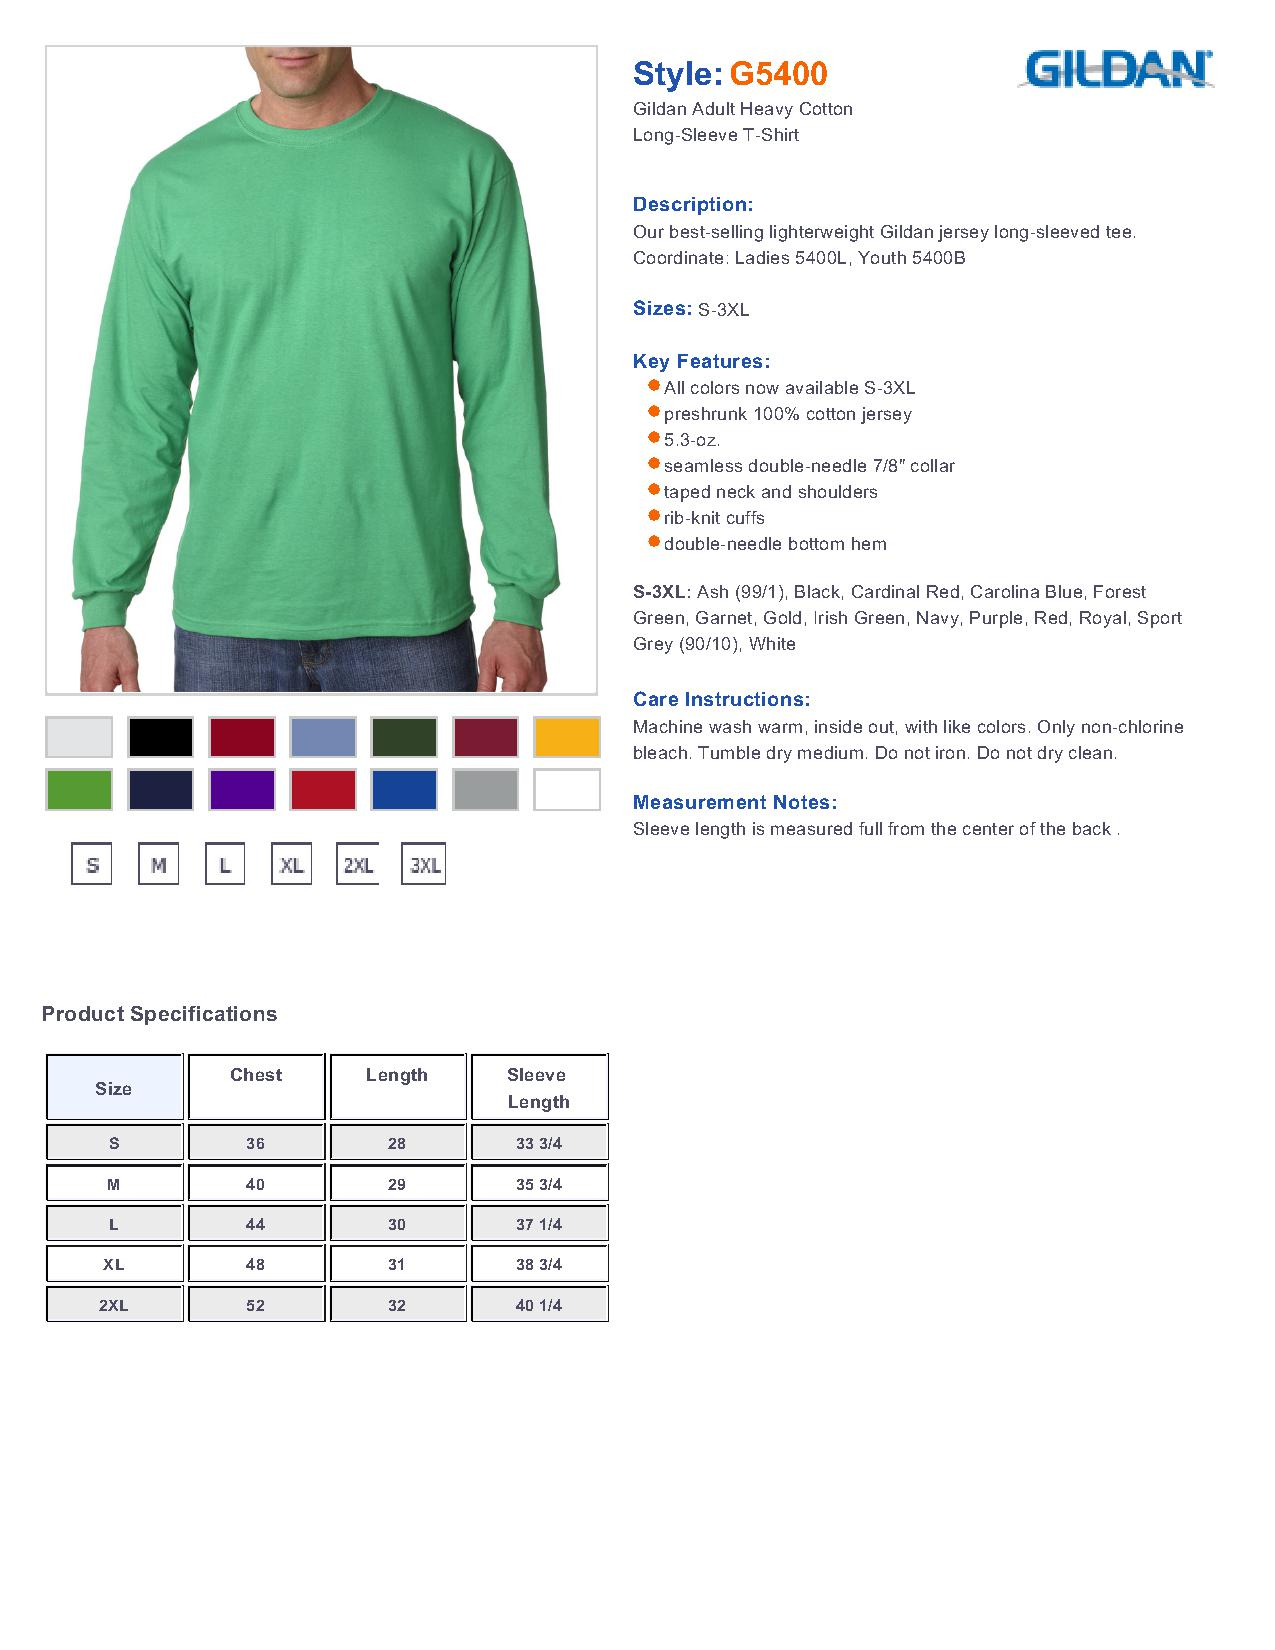 38254ee1b84e Gildan 5400 Heavy Cotton 5.3 oz. Long-Sleeve T-Shirt $6.14 - Men's T ...